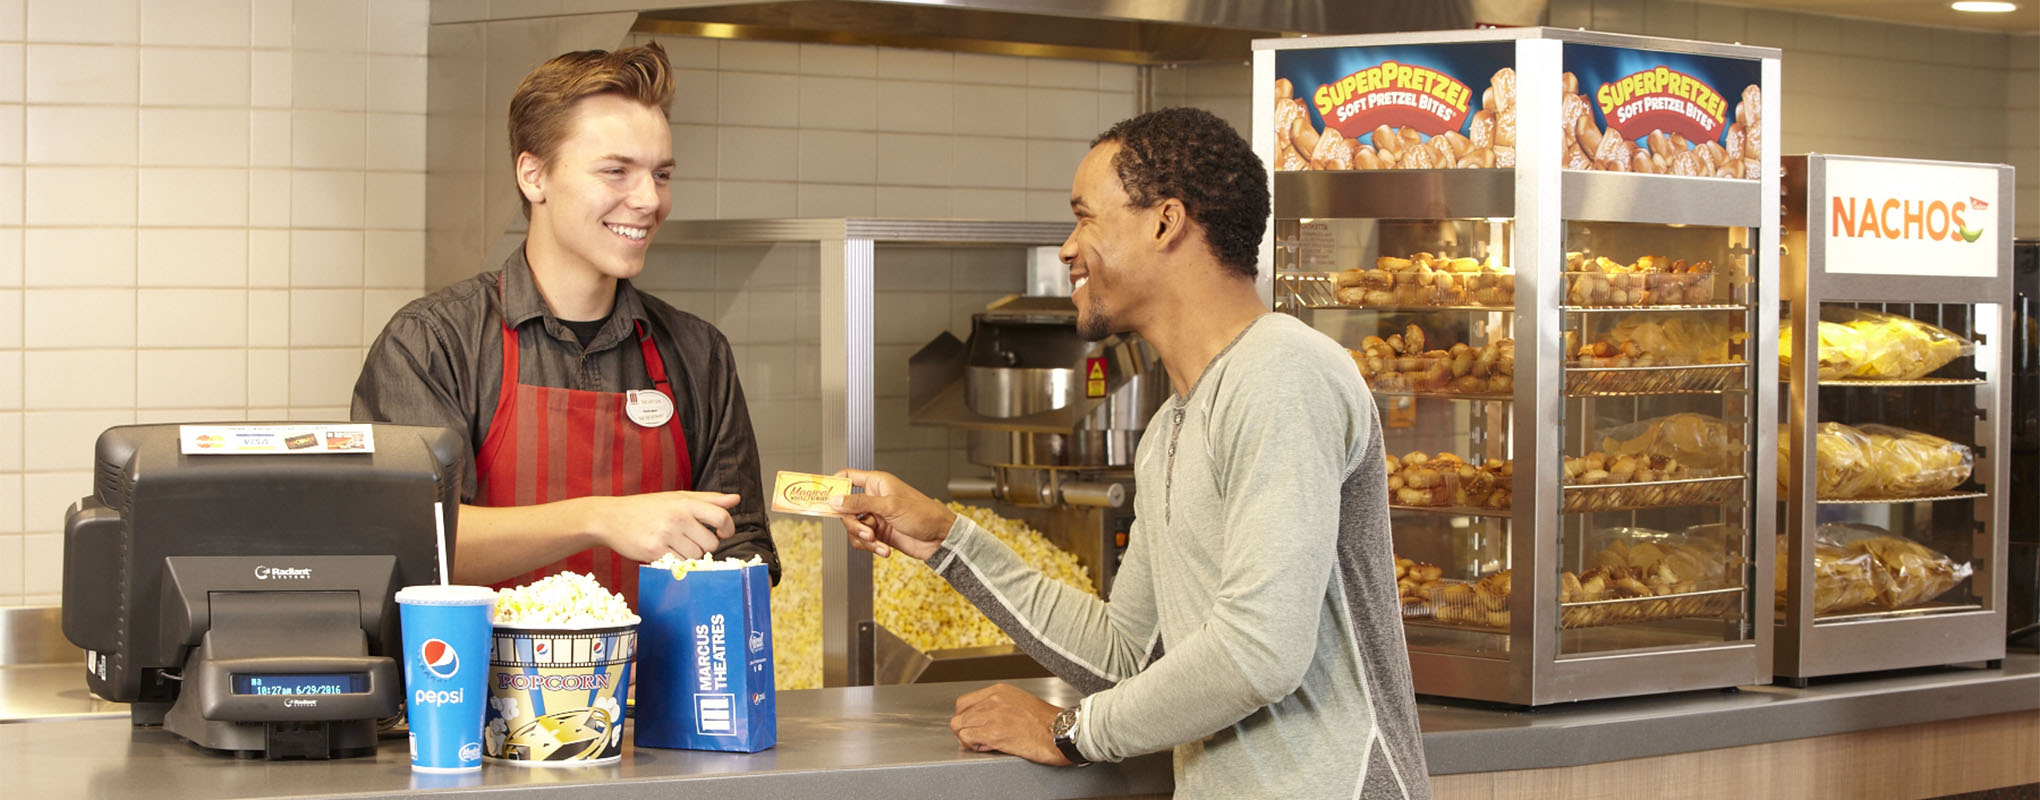 Monthly Magical Movie Rewards Member Concessions Offer